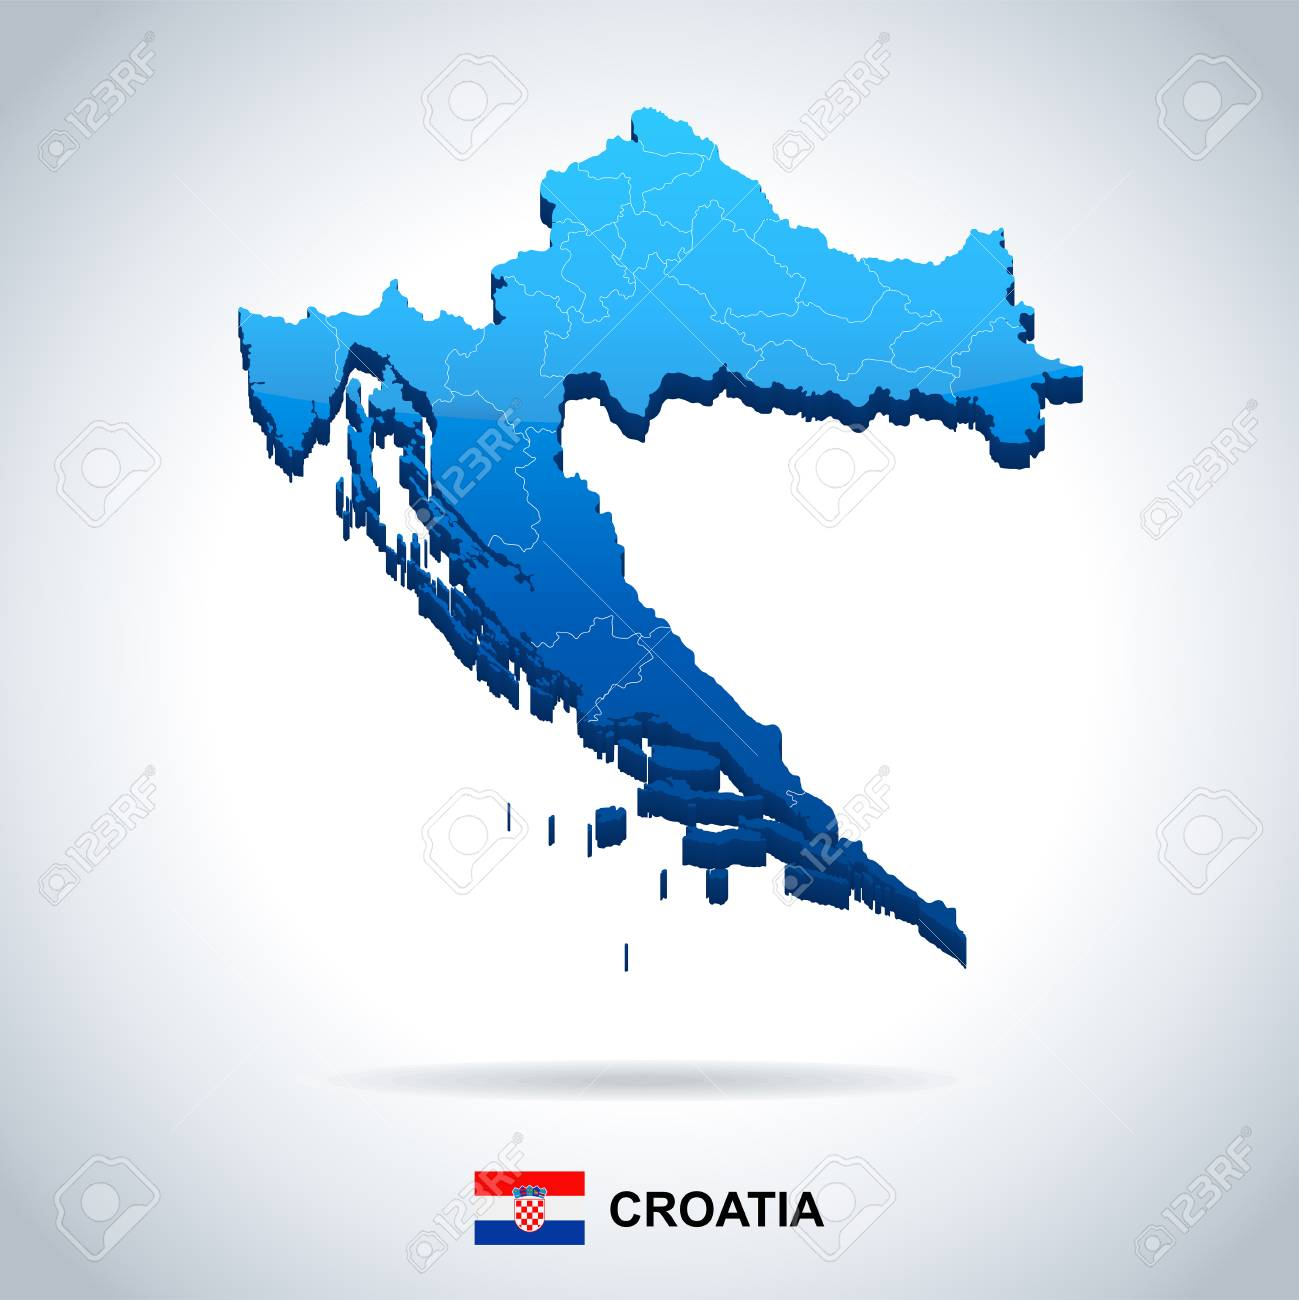 Croatia Map And Flag - High Detailed Vector Illustration Royalty ...